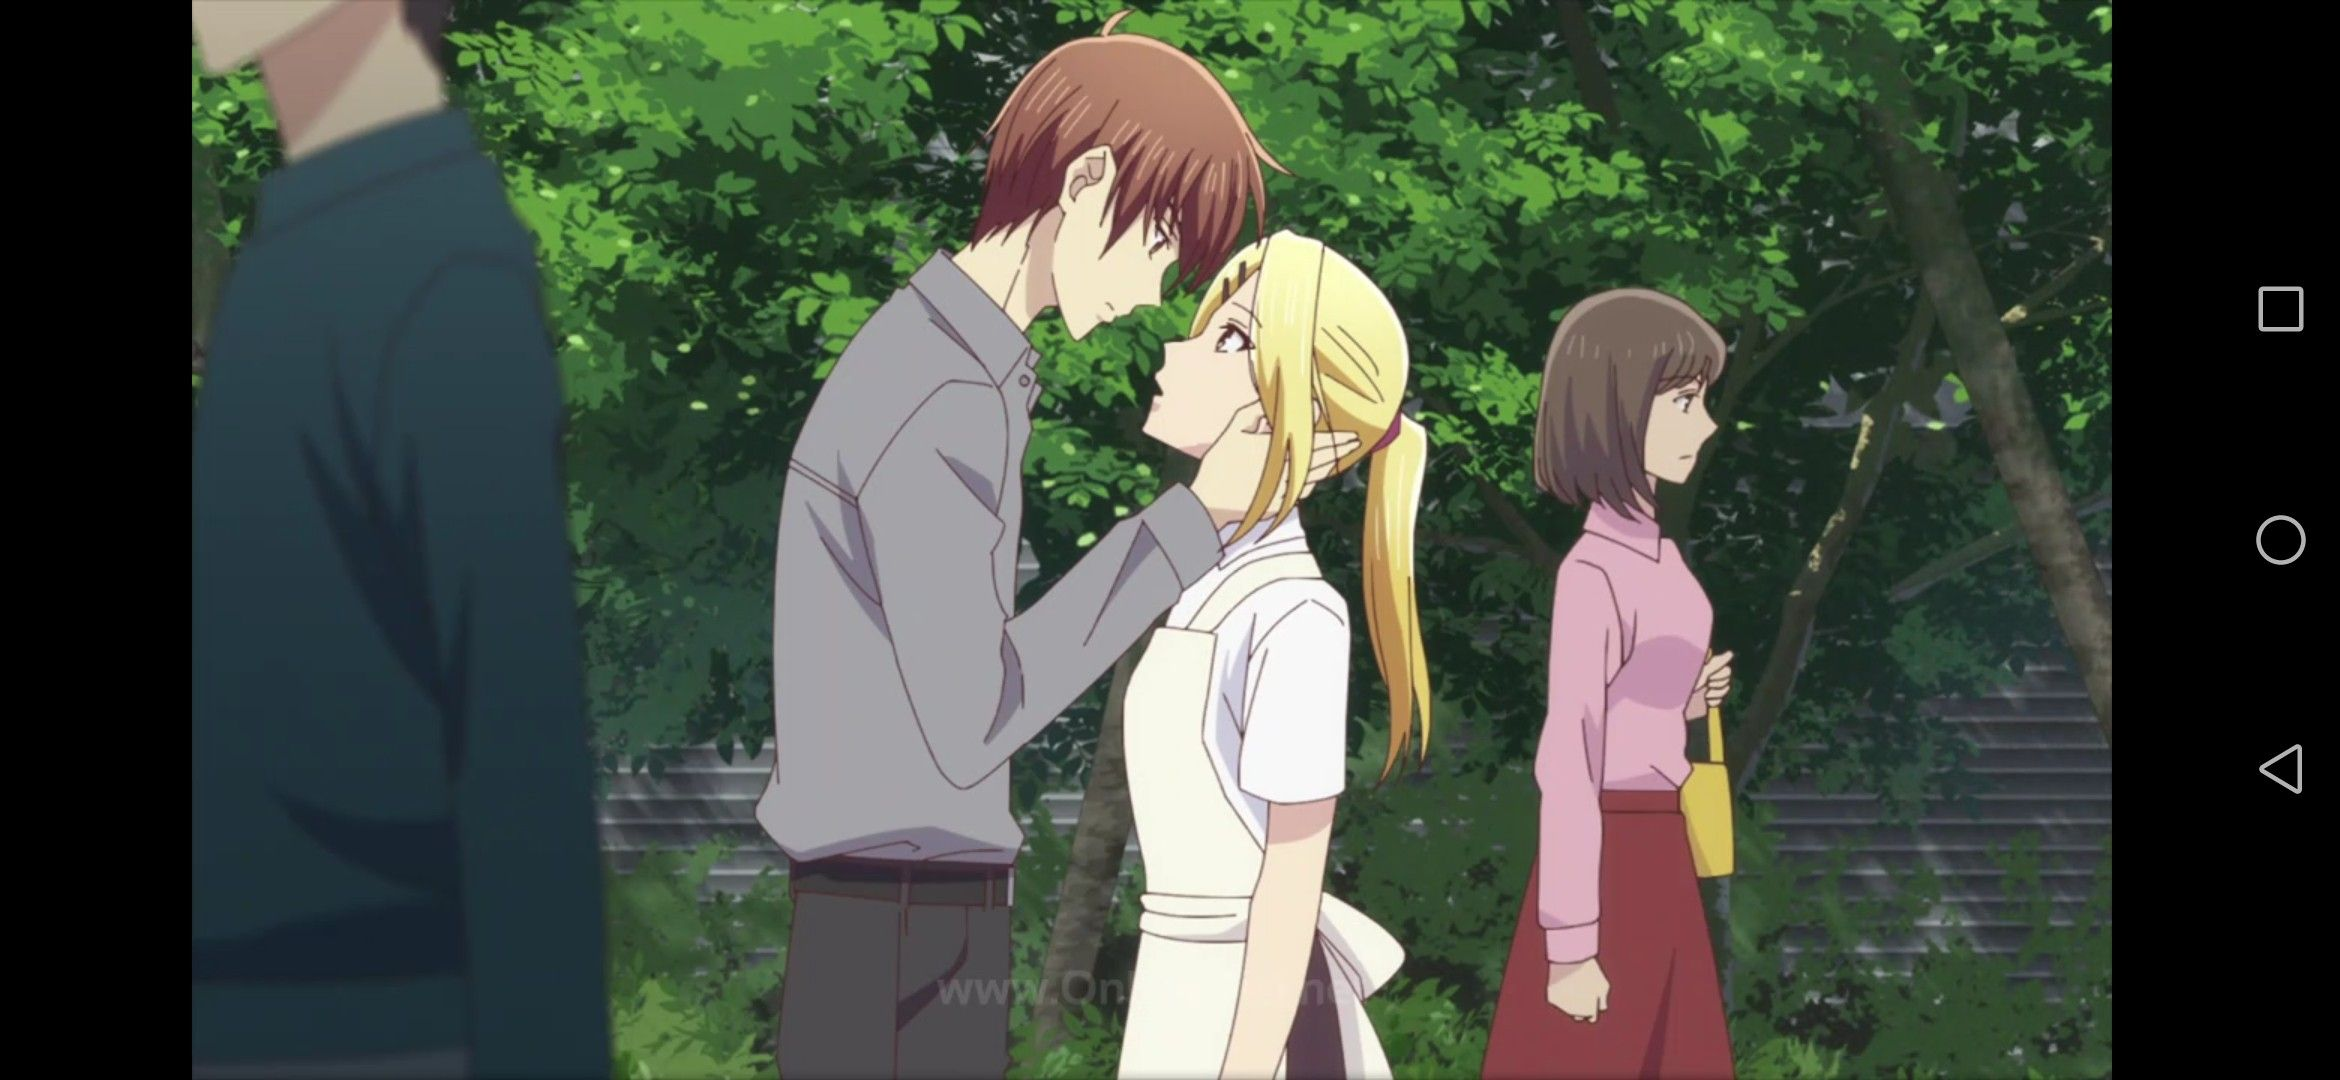 Fruits basket 2019 2 in 2020 Fruits basket, Basket, Fruit